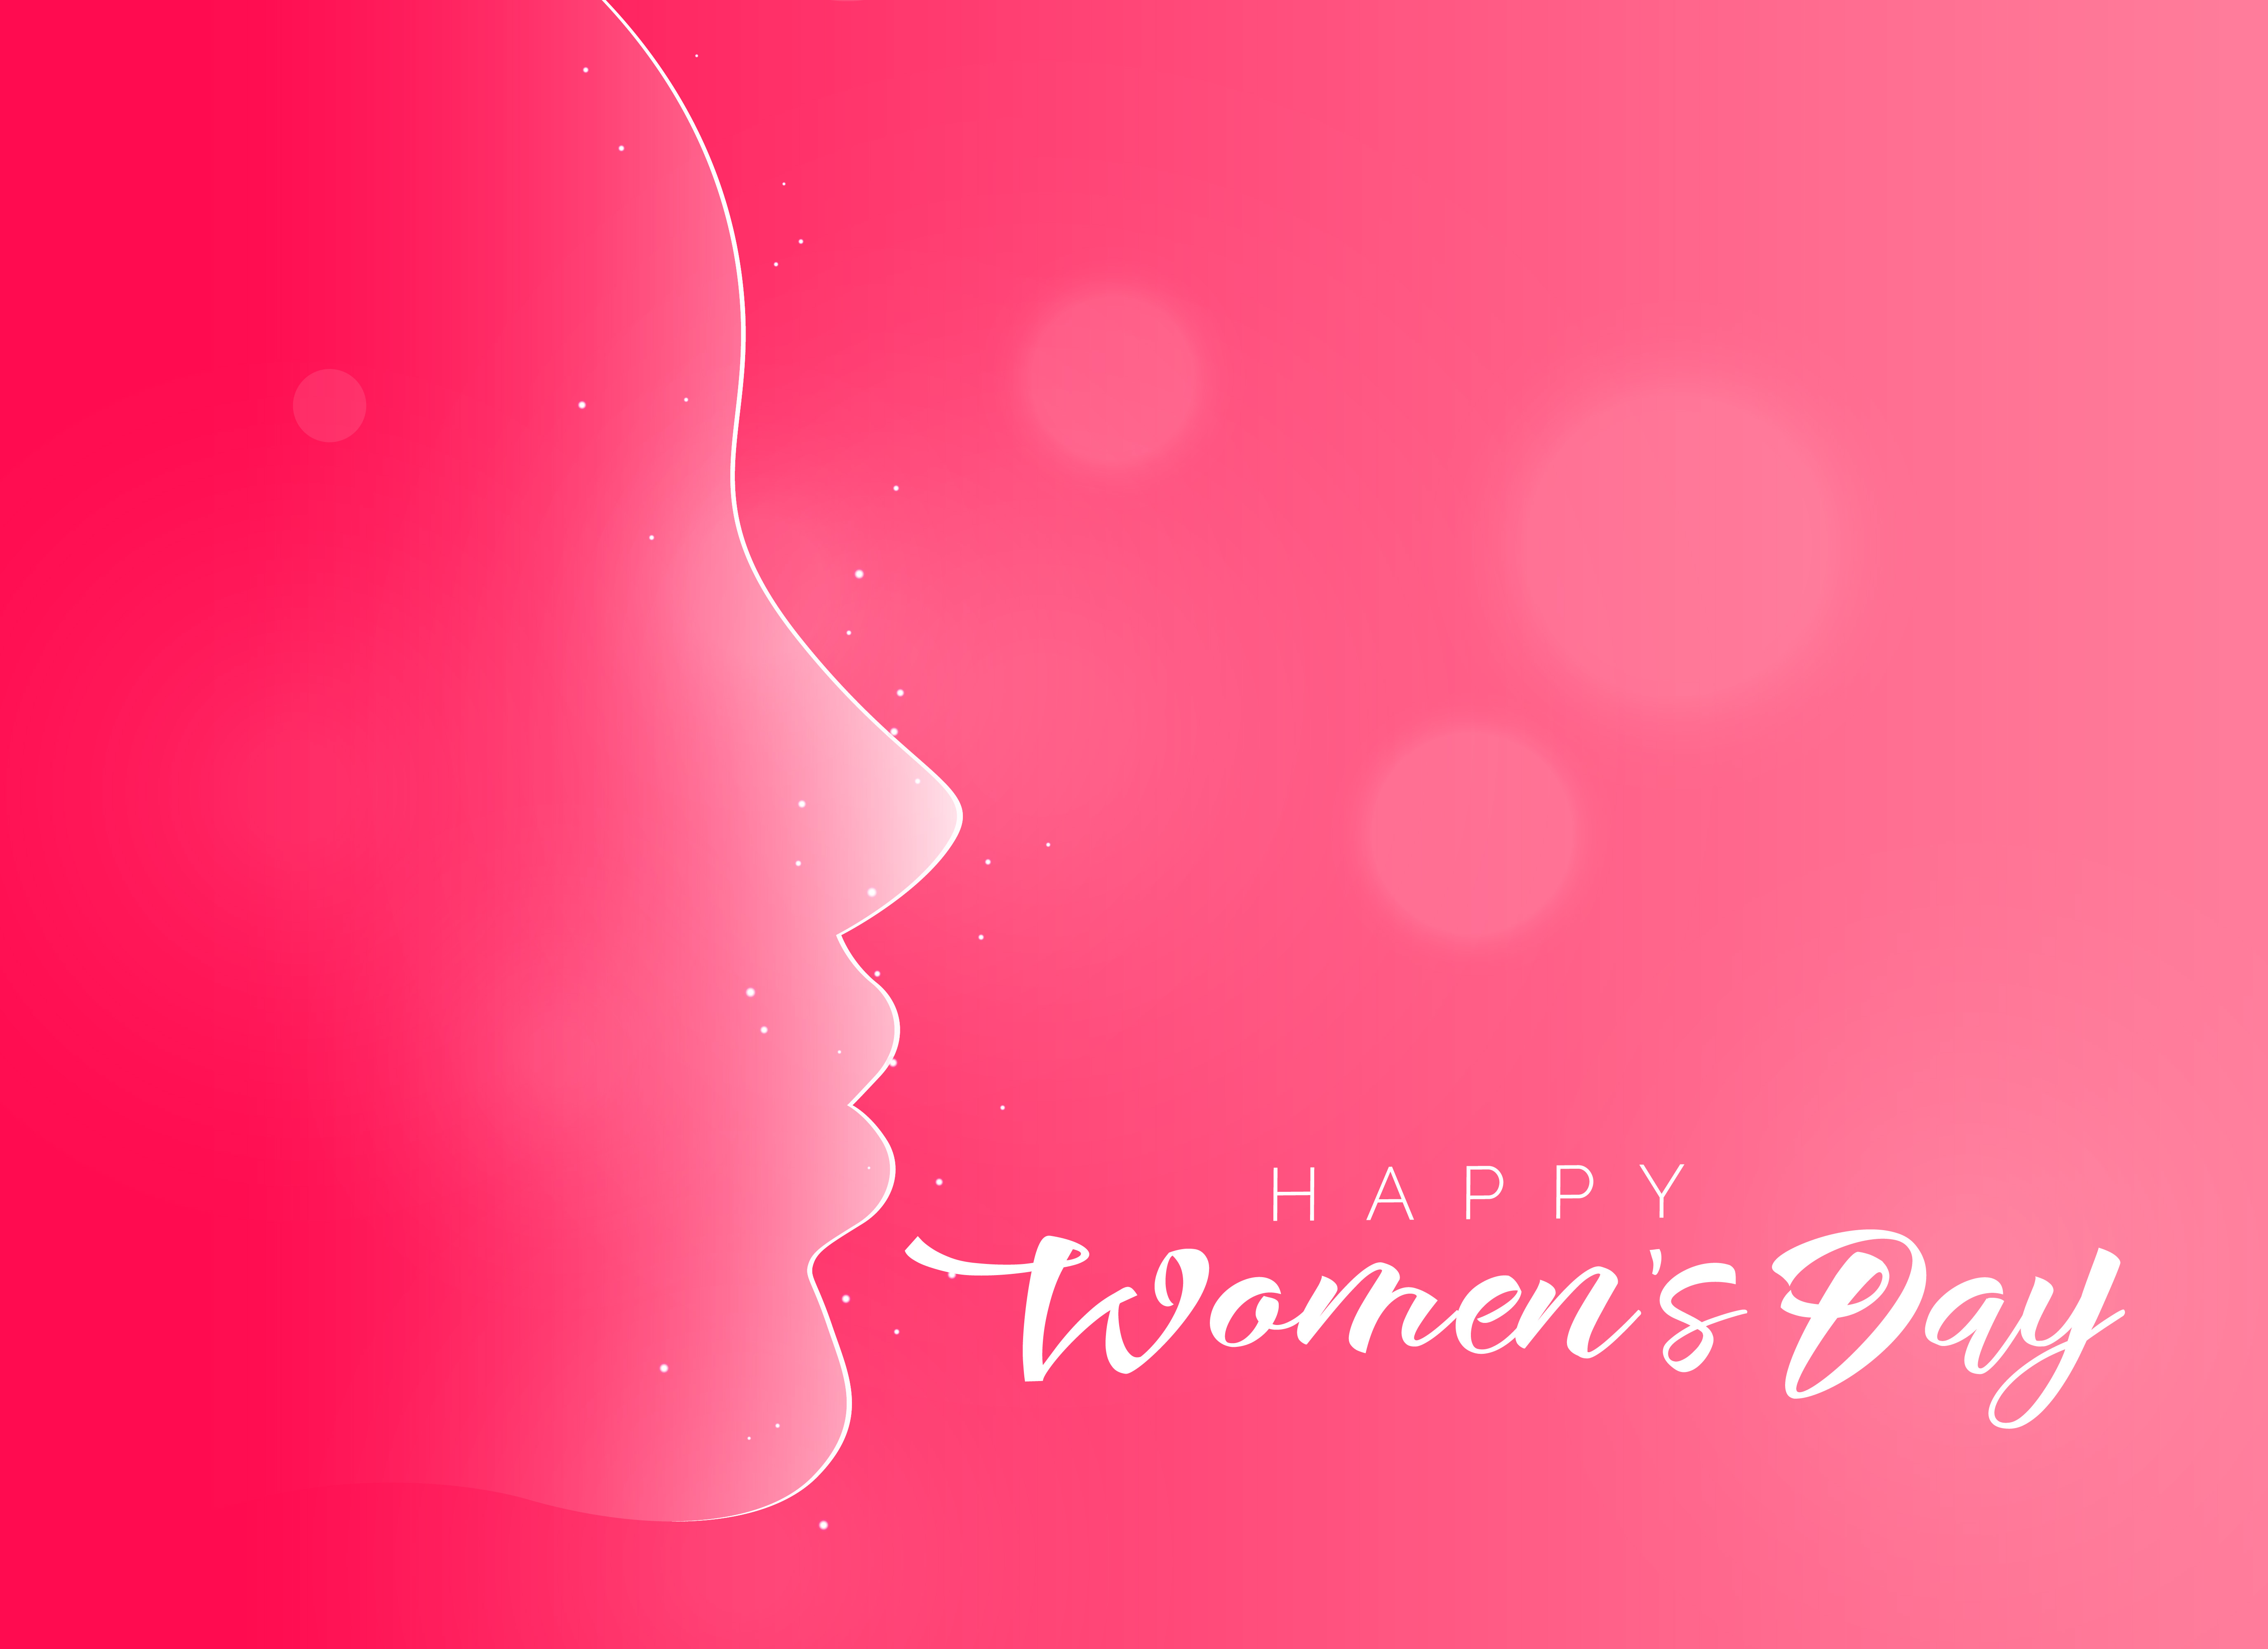 lovely pink happy women 39 s day background download free vector art stock graphics images. Black Bedroom Furniture Sets. Home Design Ideas